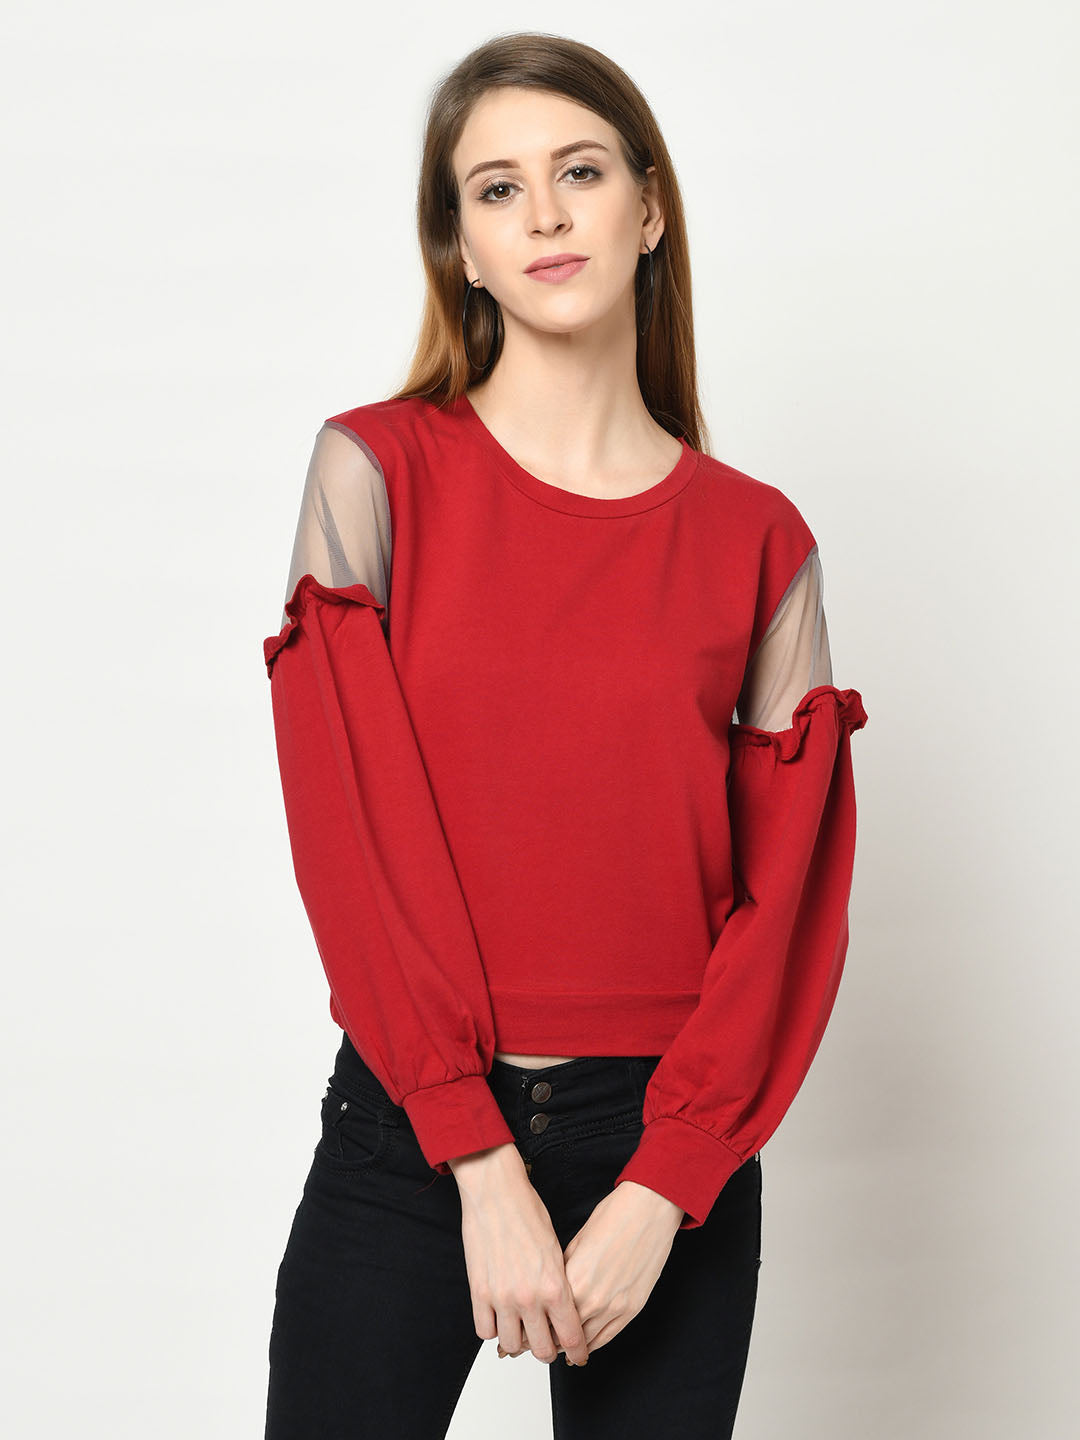 Red Sweatshirt With Black Net